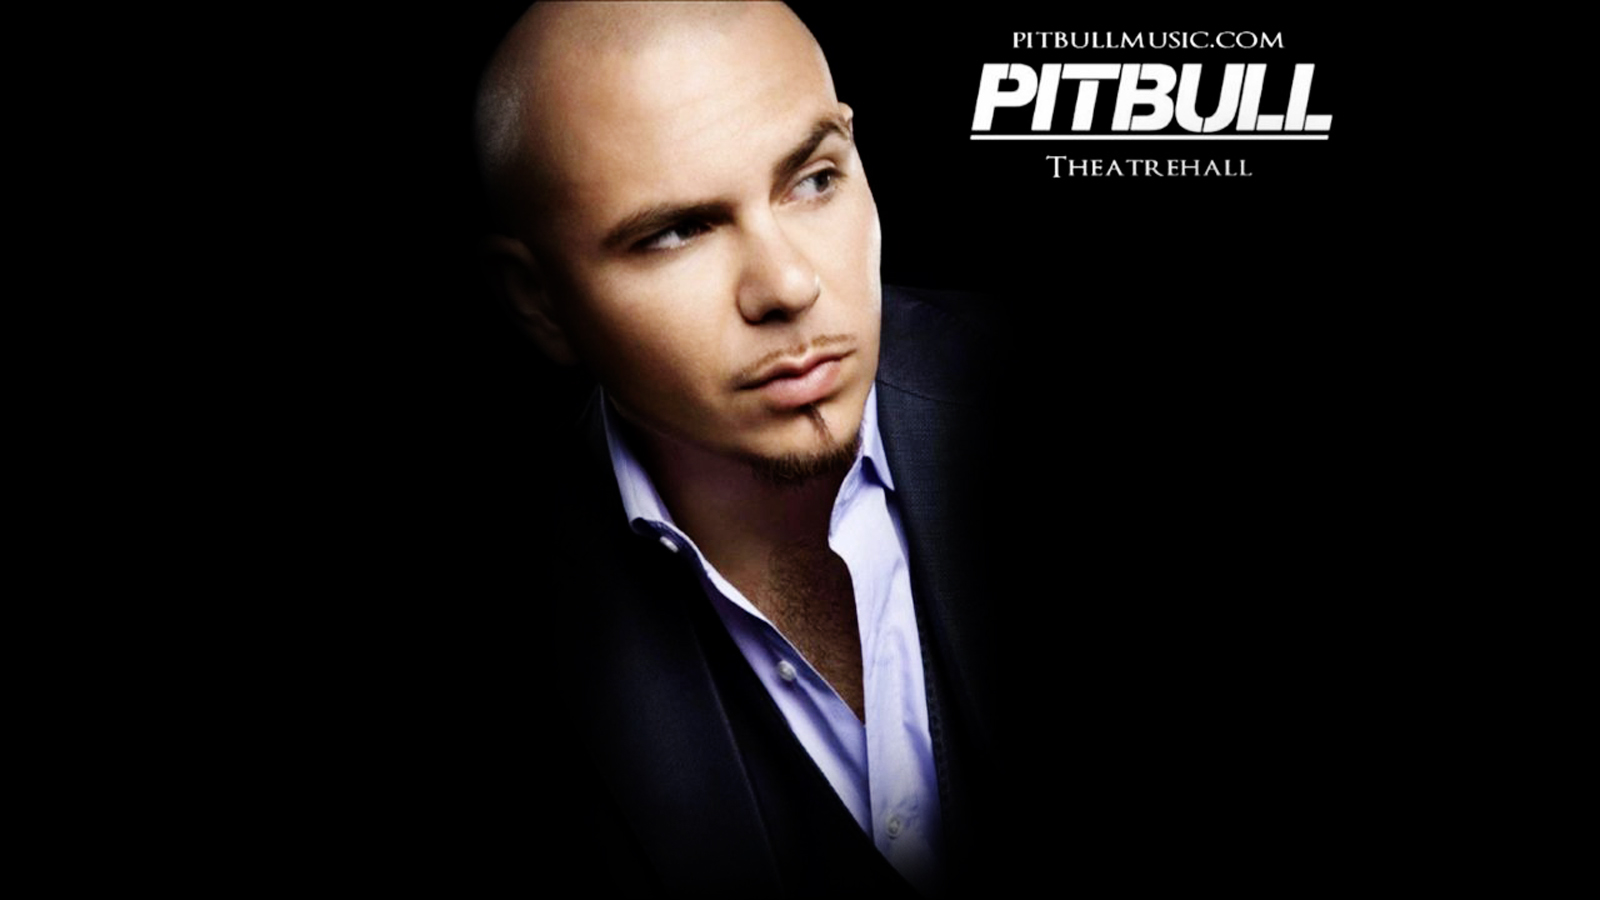 Rapper Pitbull HD Wallpapers| HD Wallpapers ,Backgrounds ...